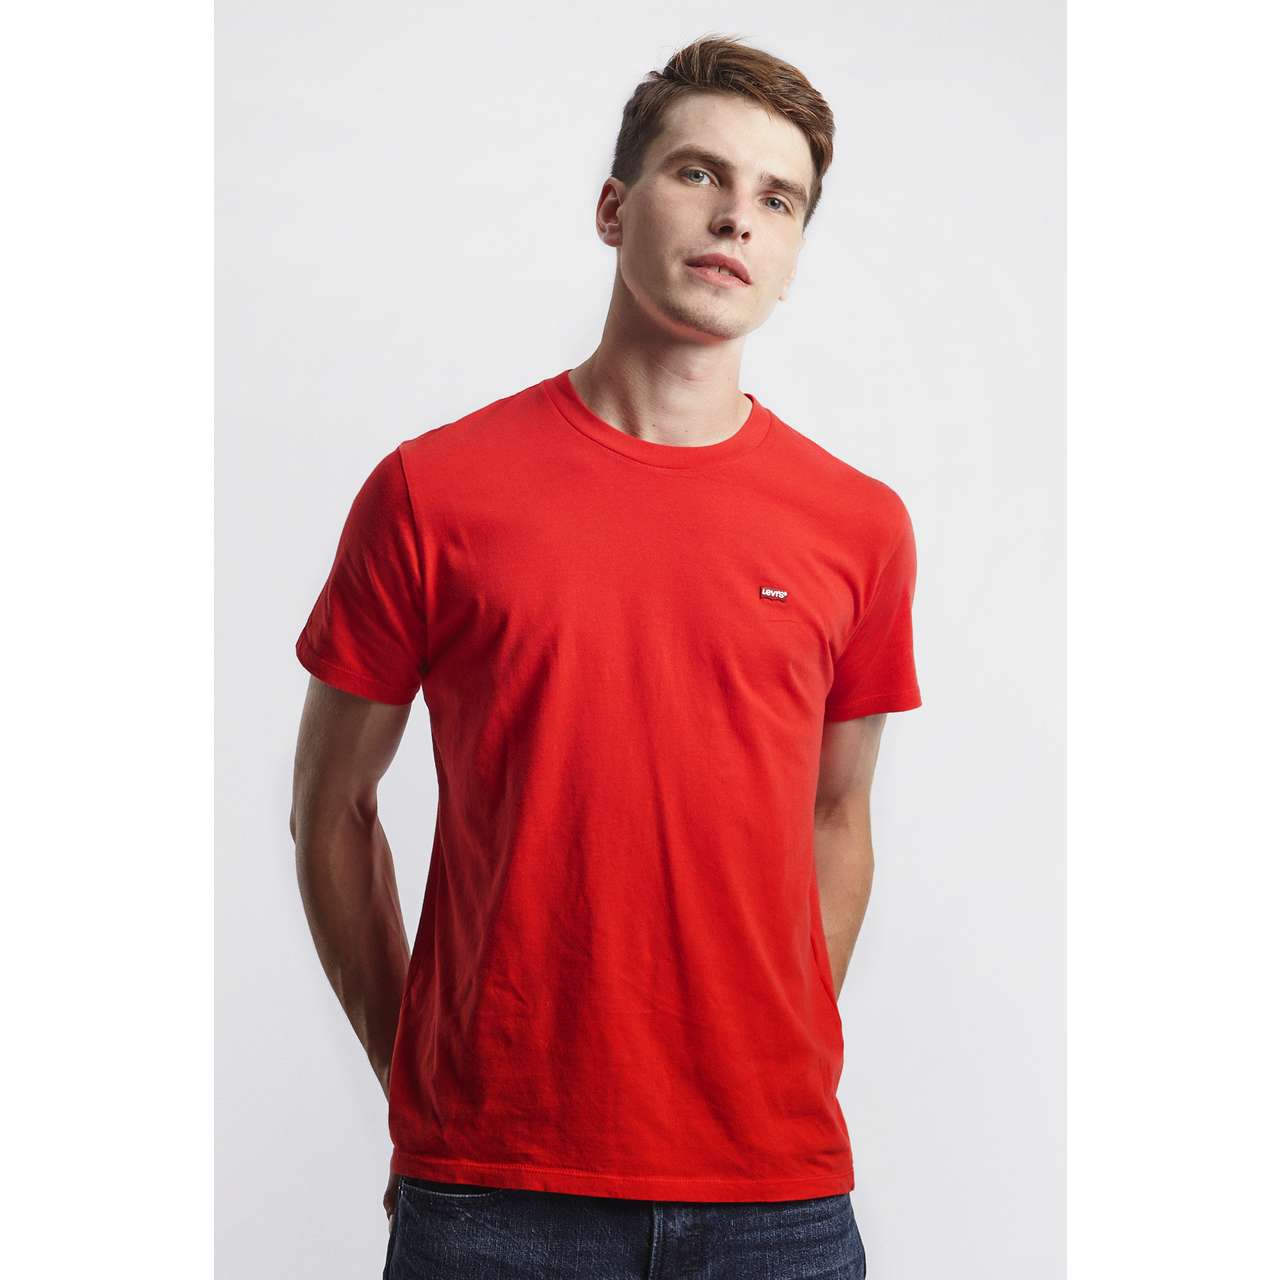 Koszulka Levi's  <br/><small>ORIGINAL HOUSEMARK TEE 0025 BRILLIANT RED </small>  56605-0025